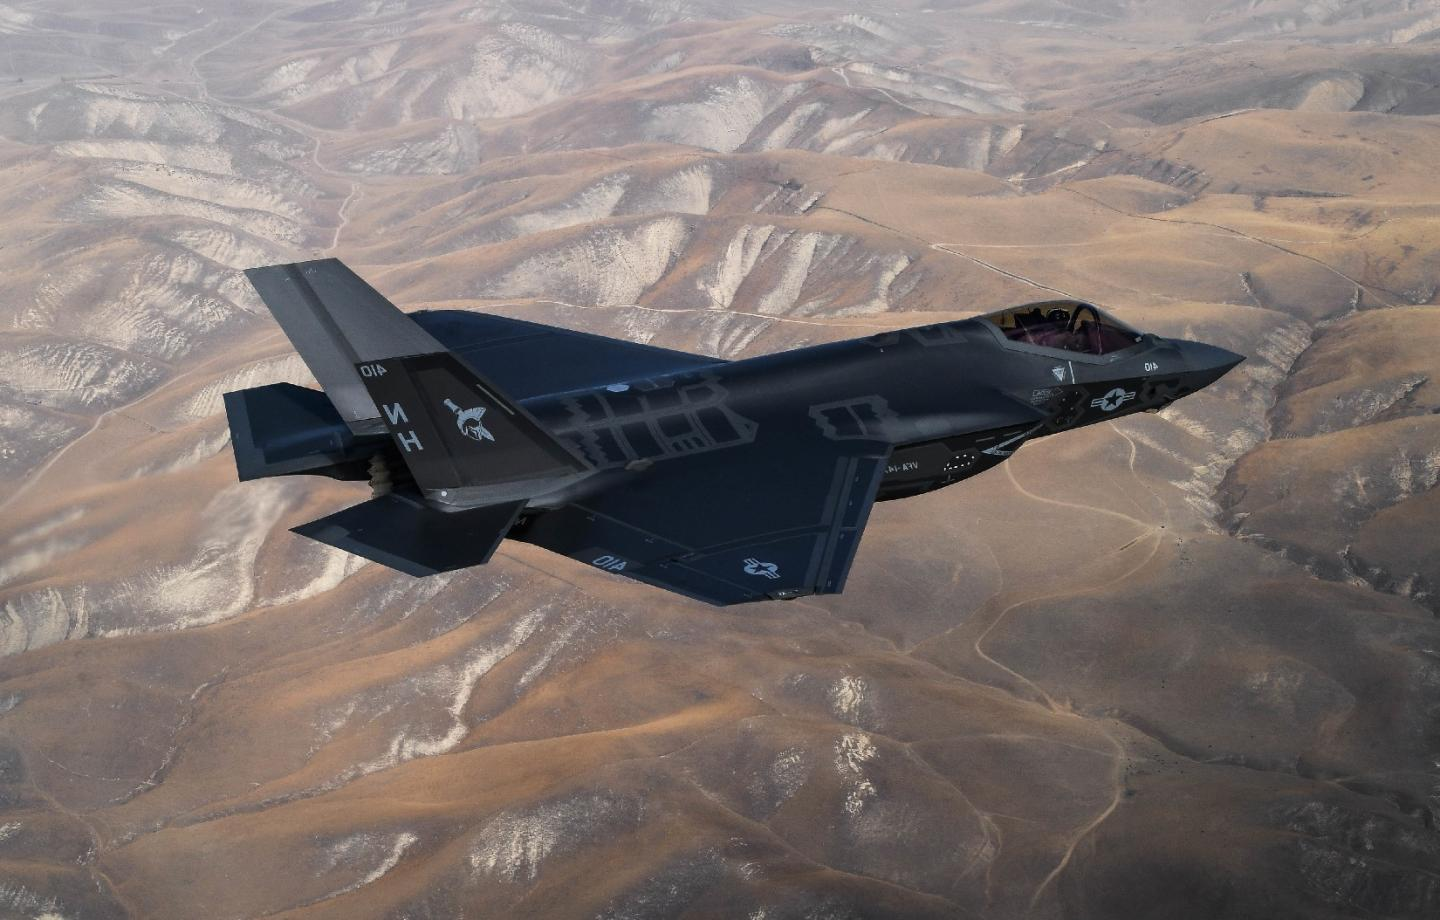 Why North Korea Fears the F-35 Stealth Fighter